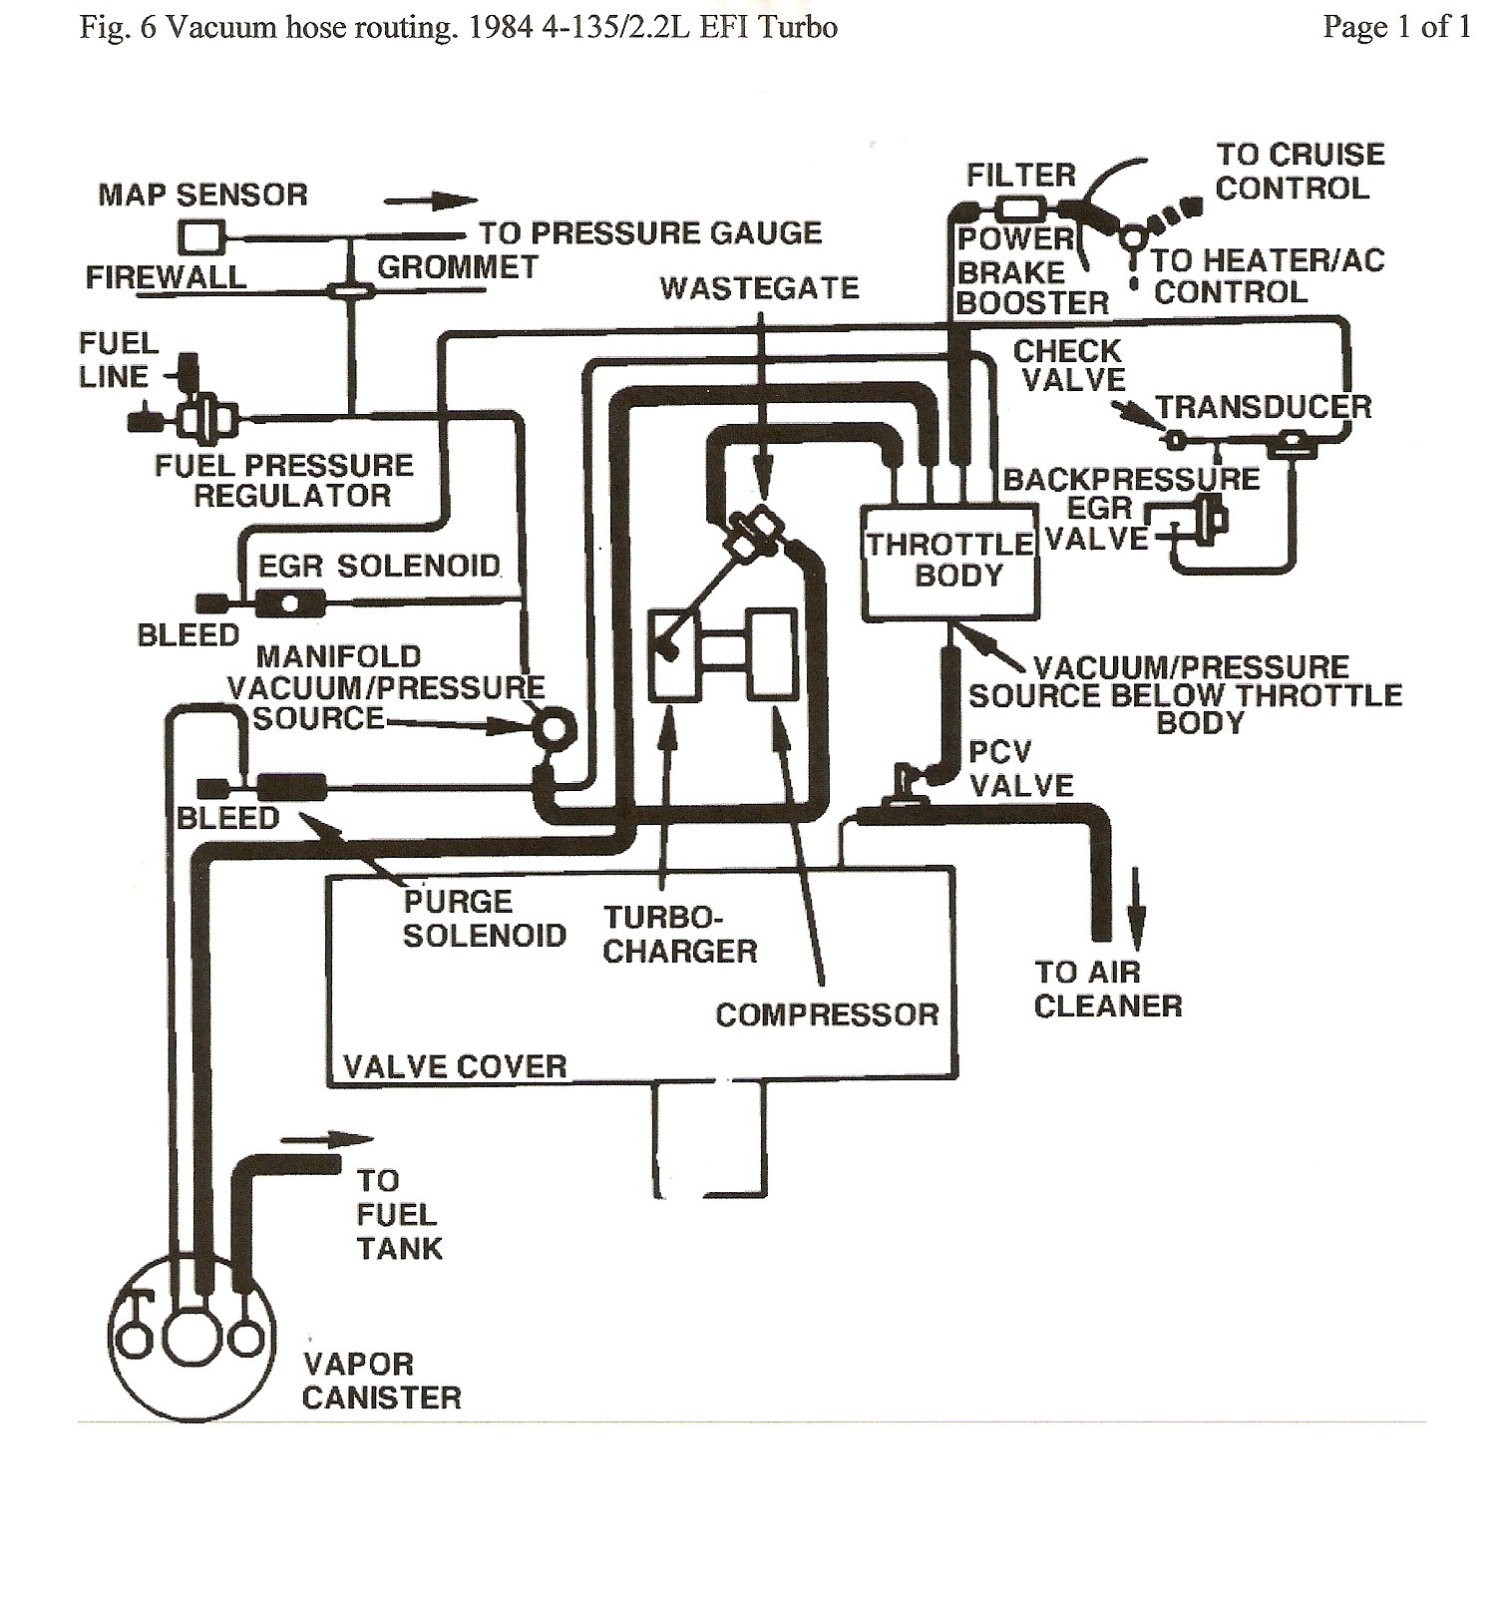 Turbo Charger Diagram Nice Turbocharger Wastegate Diagram Pattern Electrical Diagram Of Turbo Charger Diagram